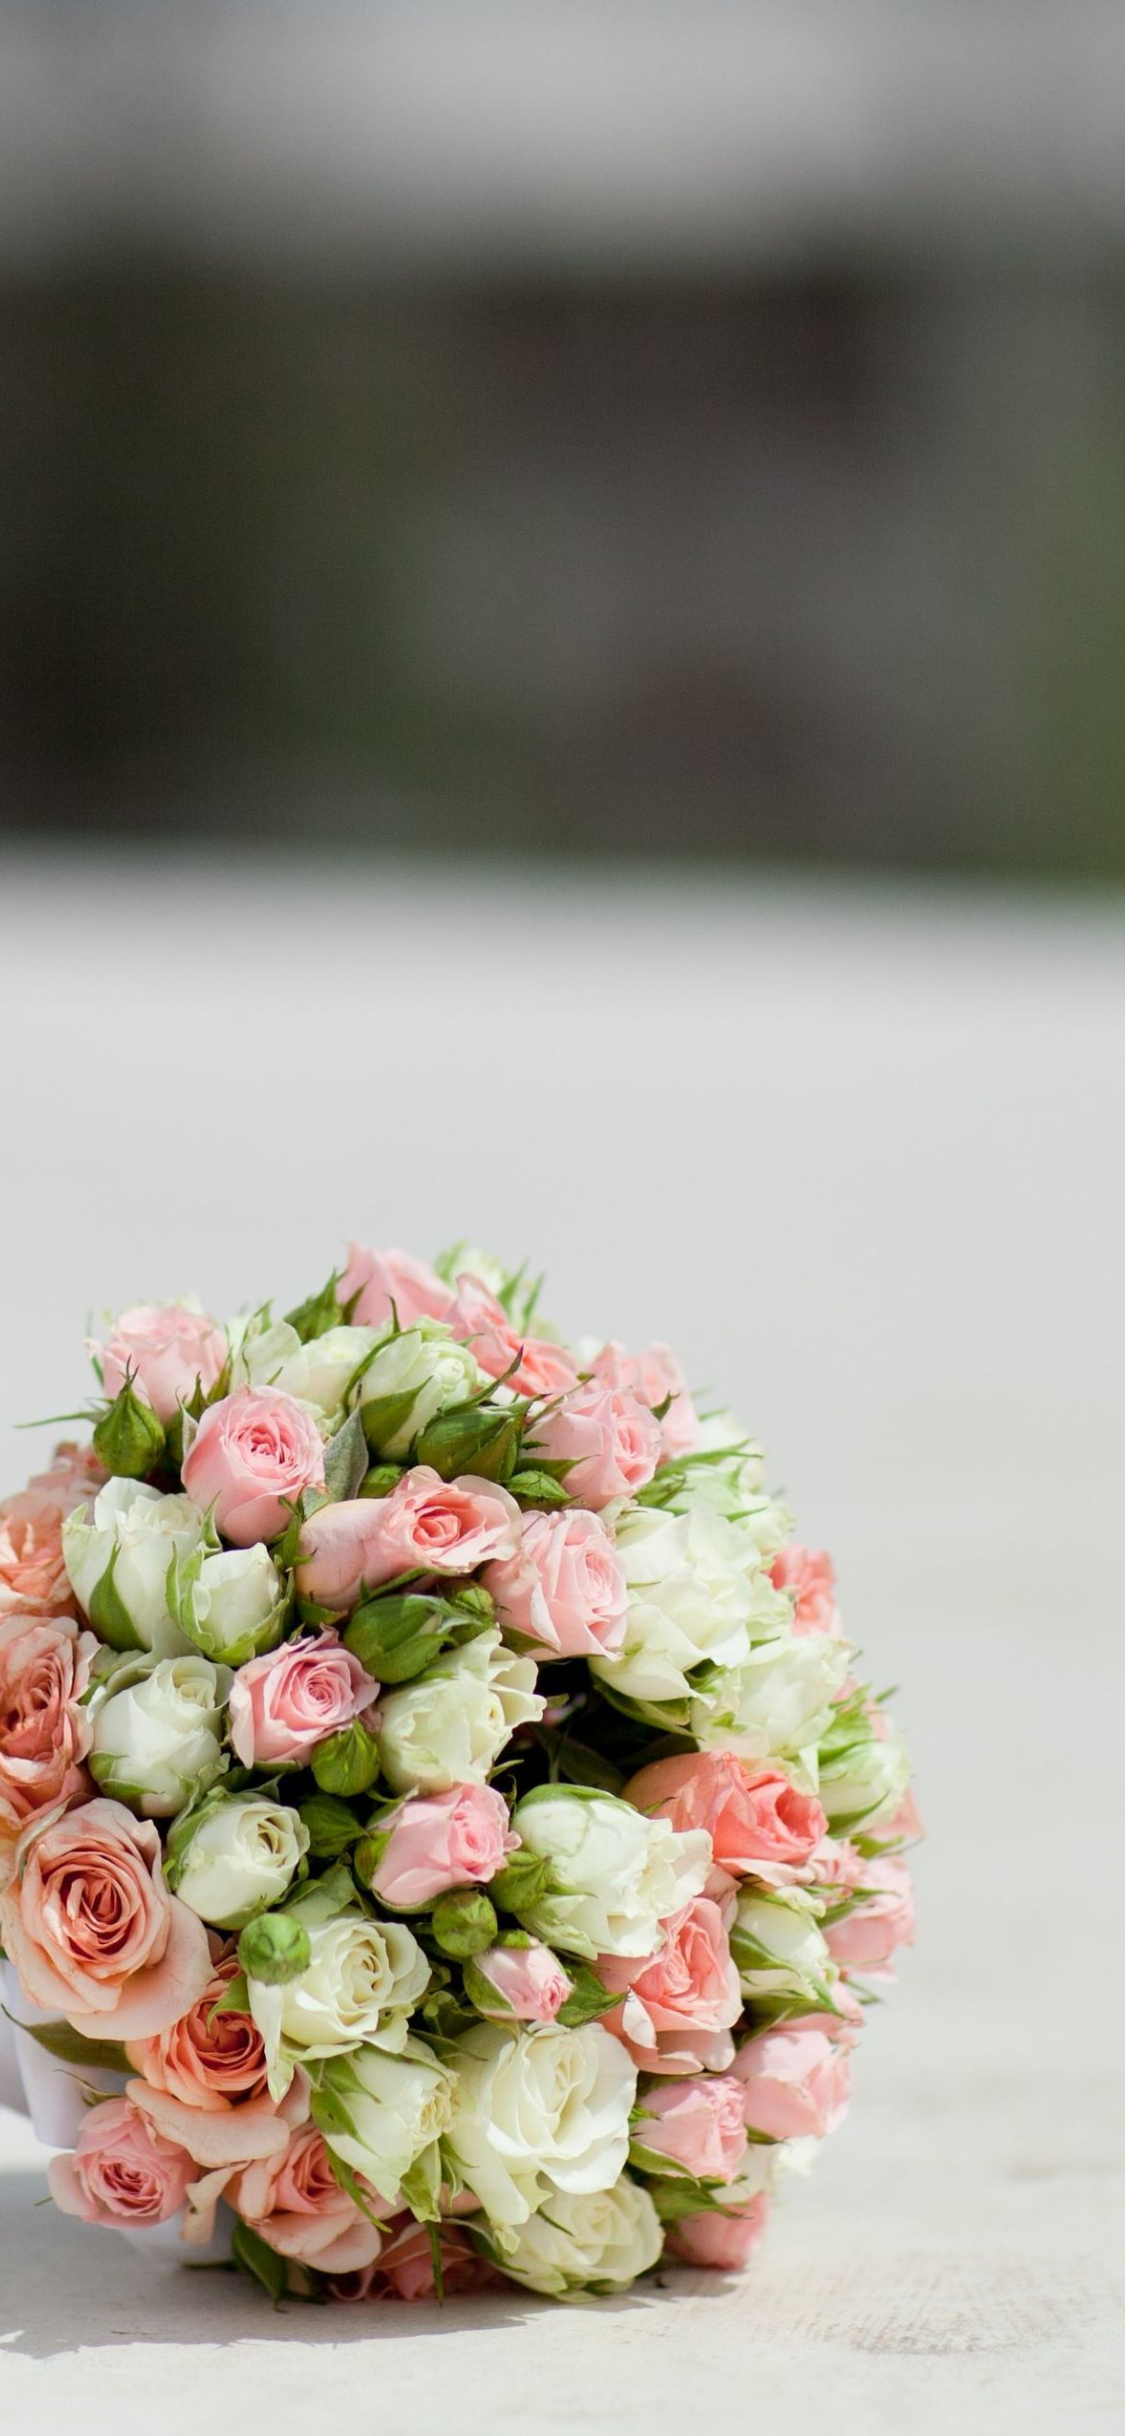 Free Download Wedding Bunch Of Flowers Photo Space Rose